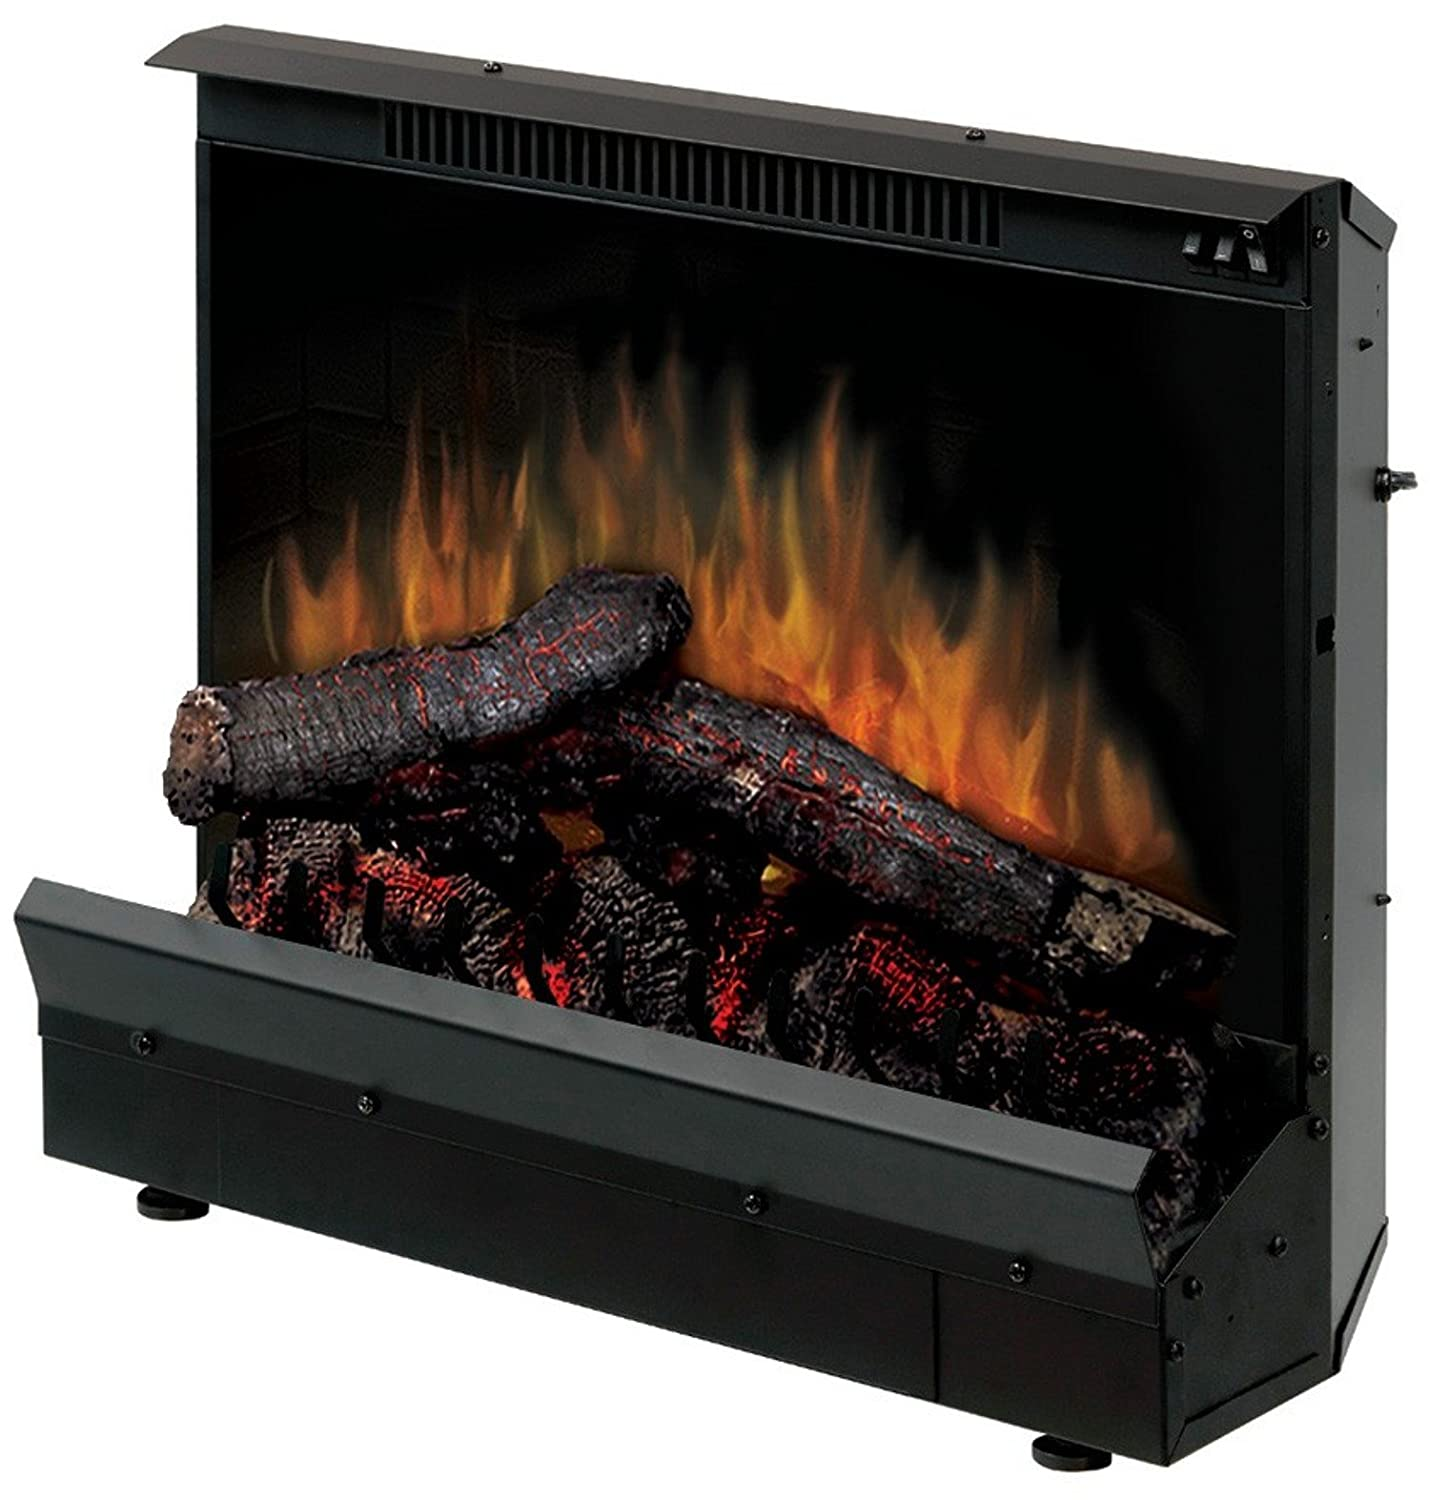 Dimplex 20-Inch Electric Fireplace